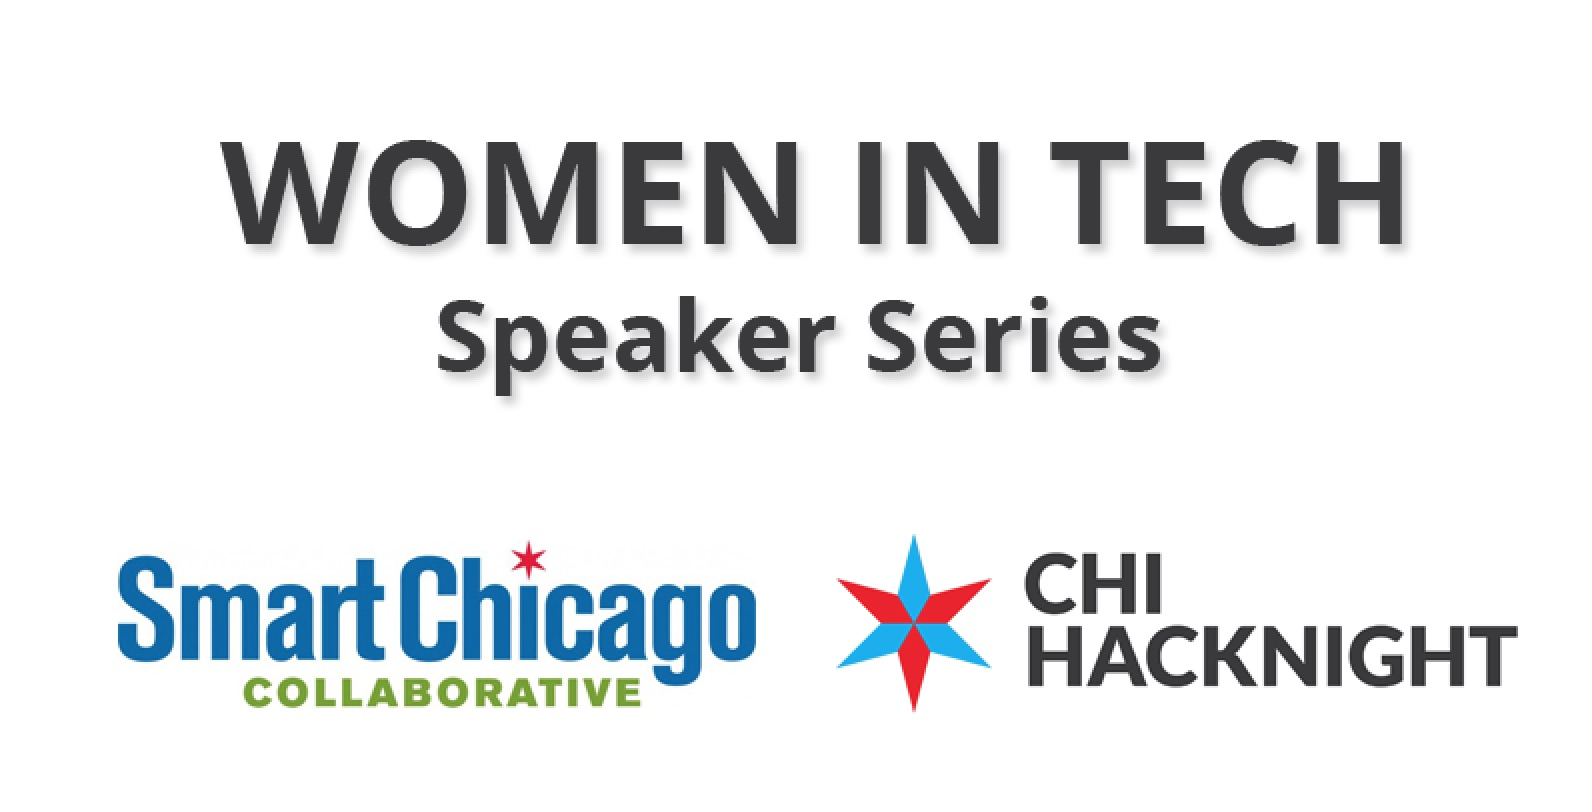 Presenting the Women In Tech Speaker Series